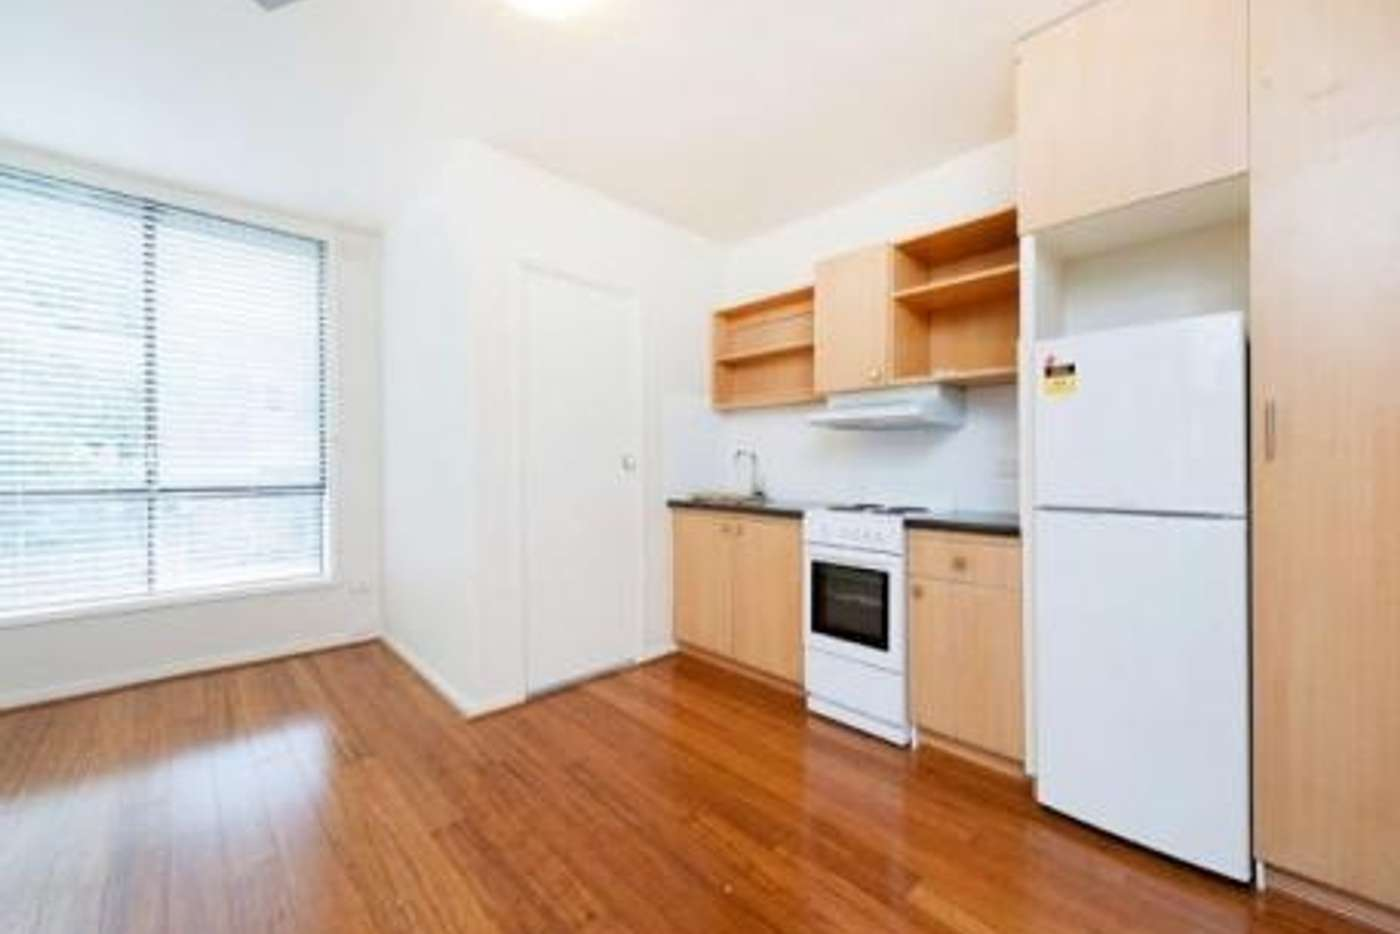 Main view of Homely apartment listing, 10/38 Charnwood, St Kilda VIC 3182